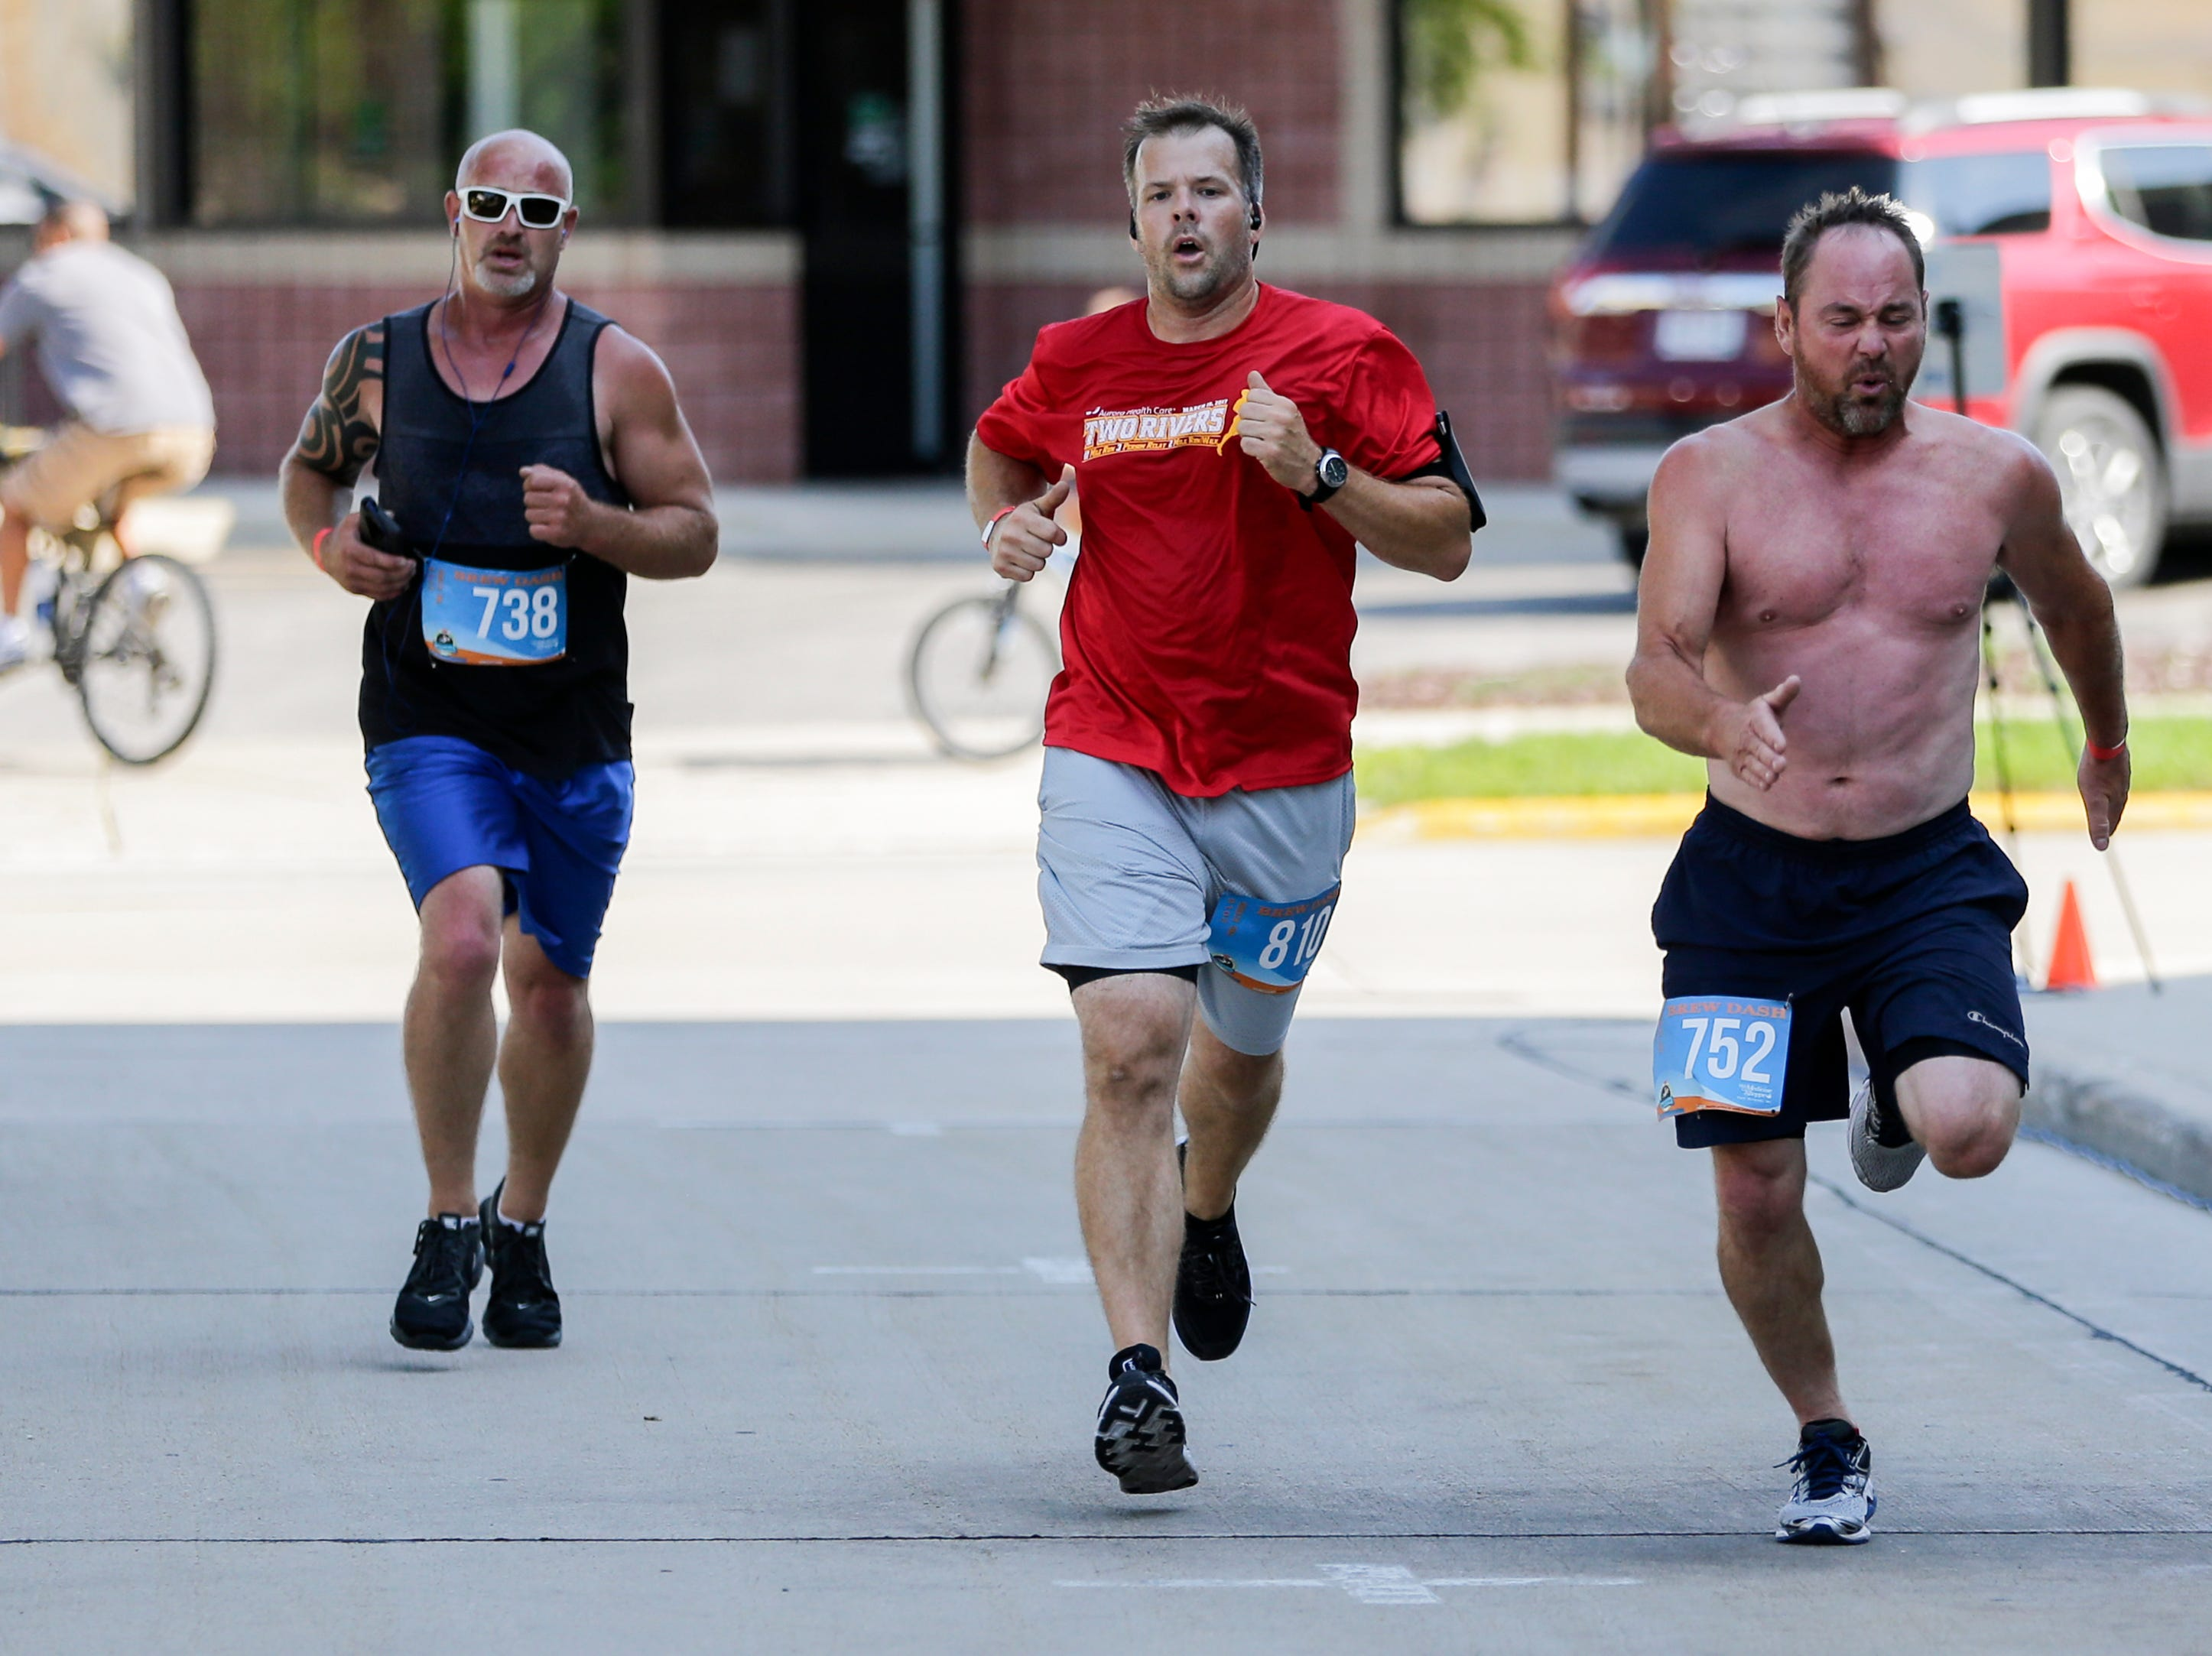 Runners strain to finish the last few feet of the Brew Dash Saturday, July 28, 2018, in Two Rivers, Wis. Josh Clark/USA TODAY NETWORK-Wisconsin